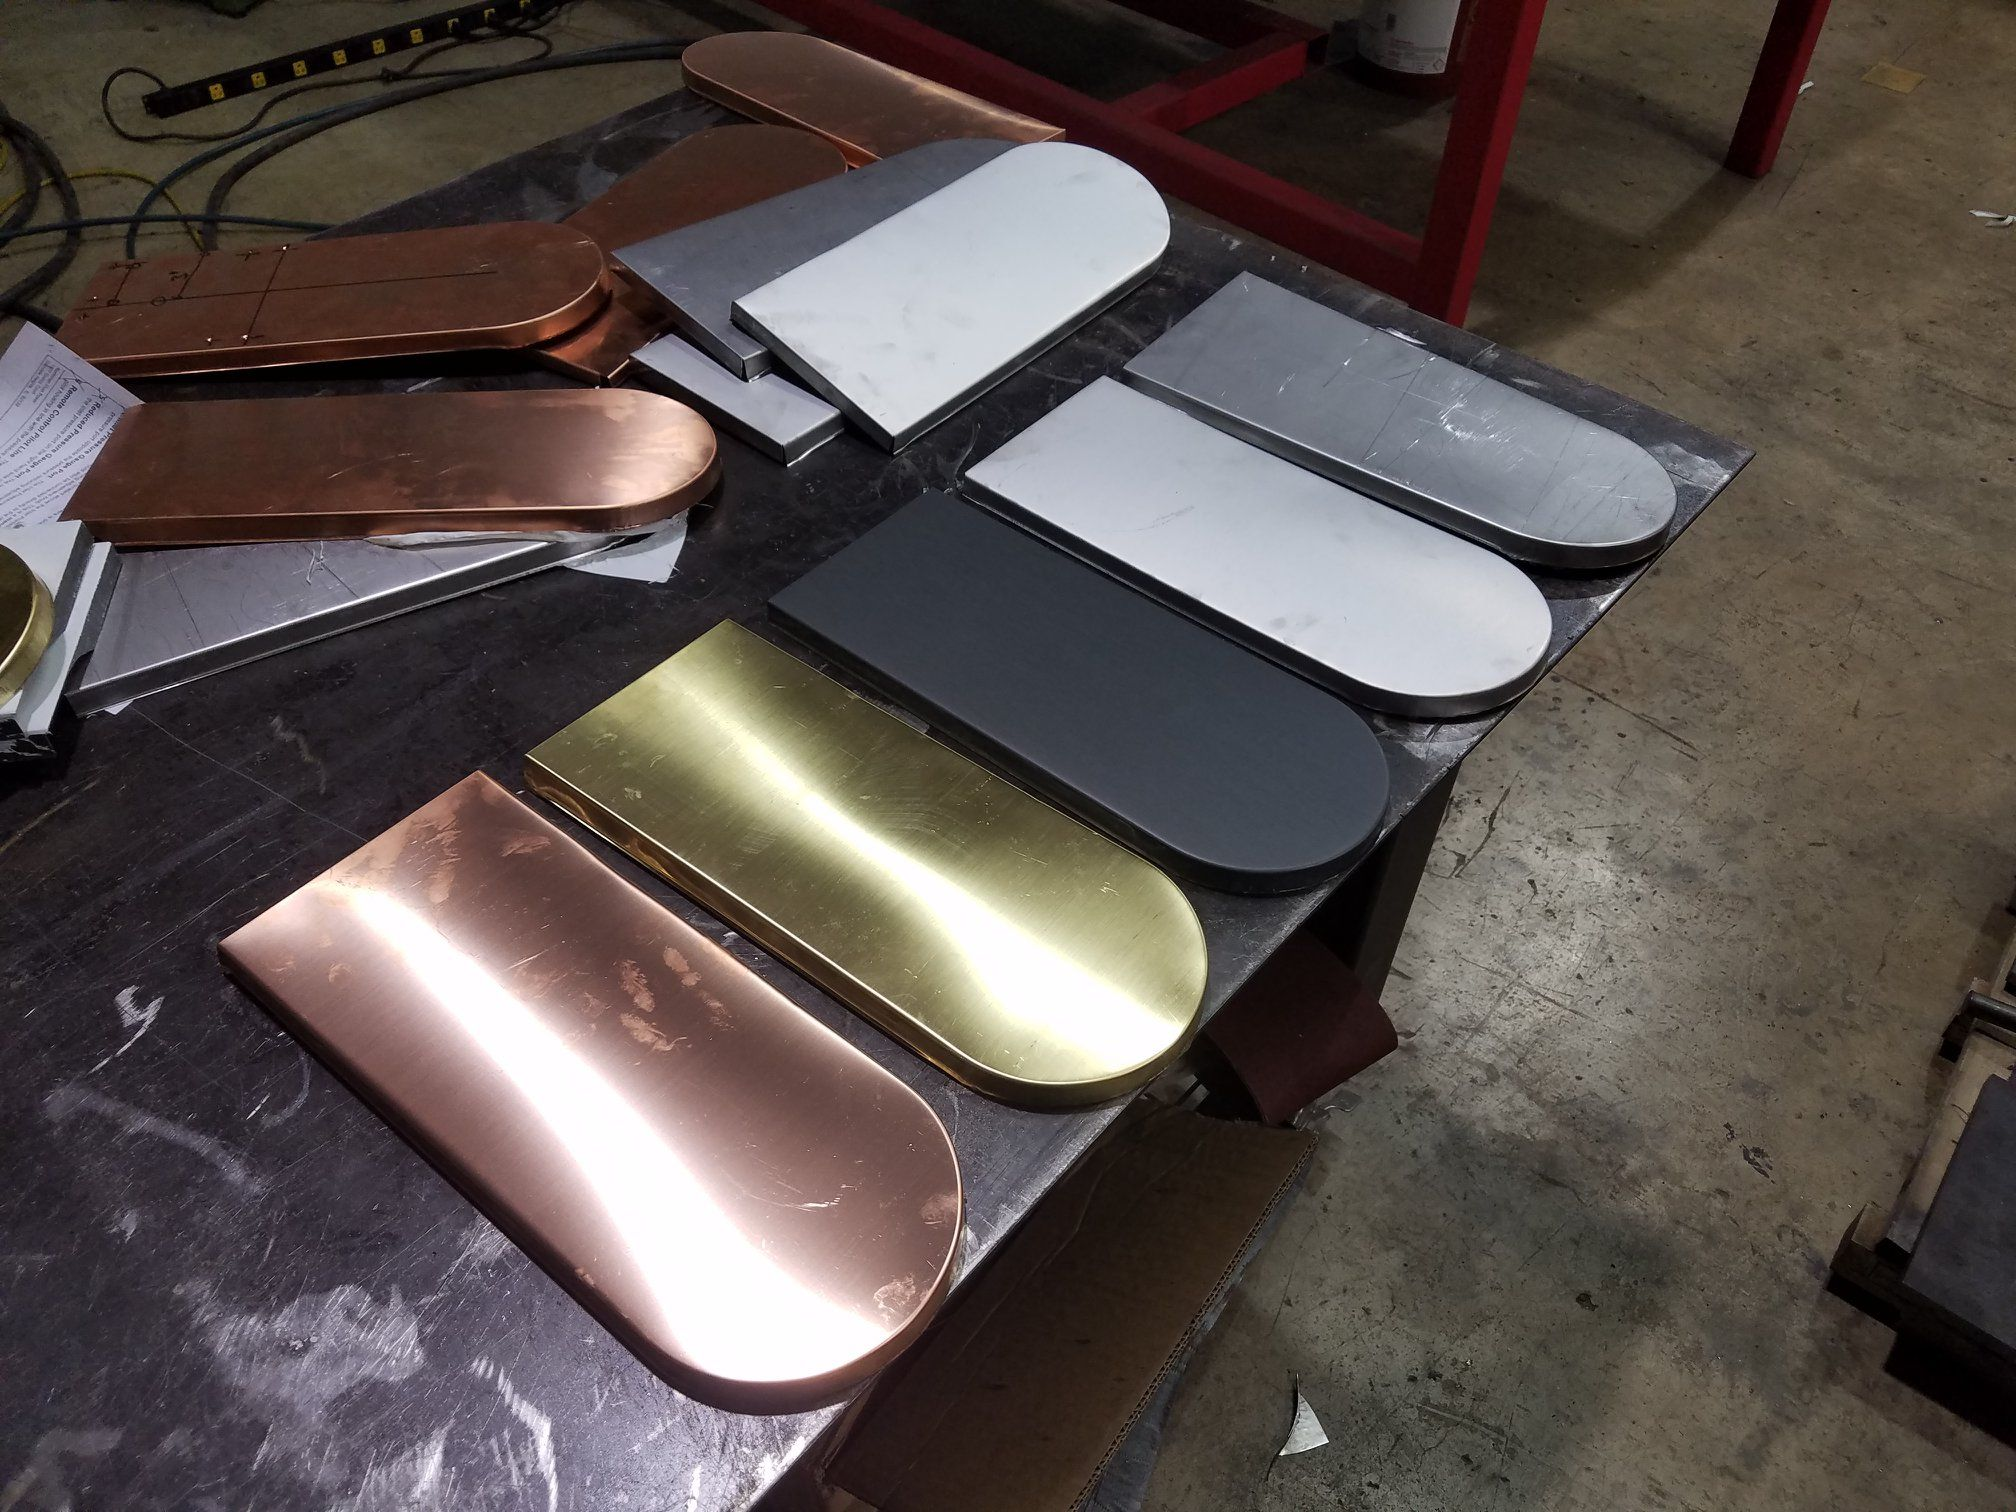 Beaver Tail Shingles For Roof And Wall Come In Copper Zinc Stainless Steel Brass Steel Aluminum And Other Metals Allo Zinc Roof Beaver Tails Geodesic Dome